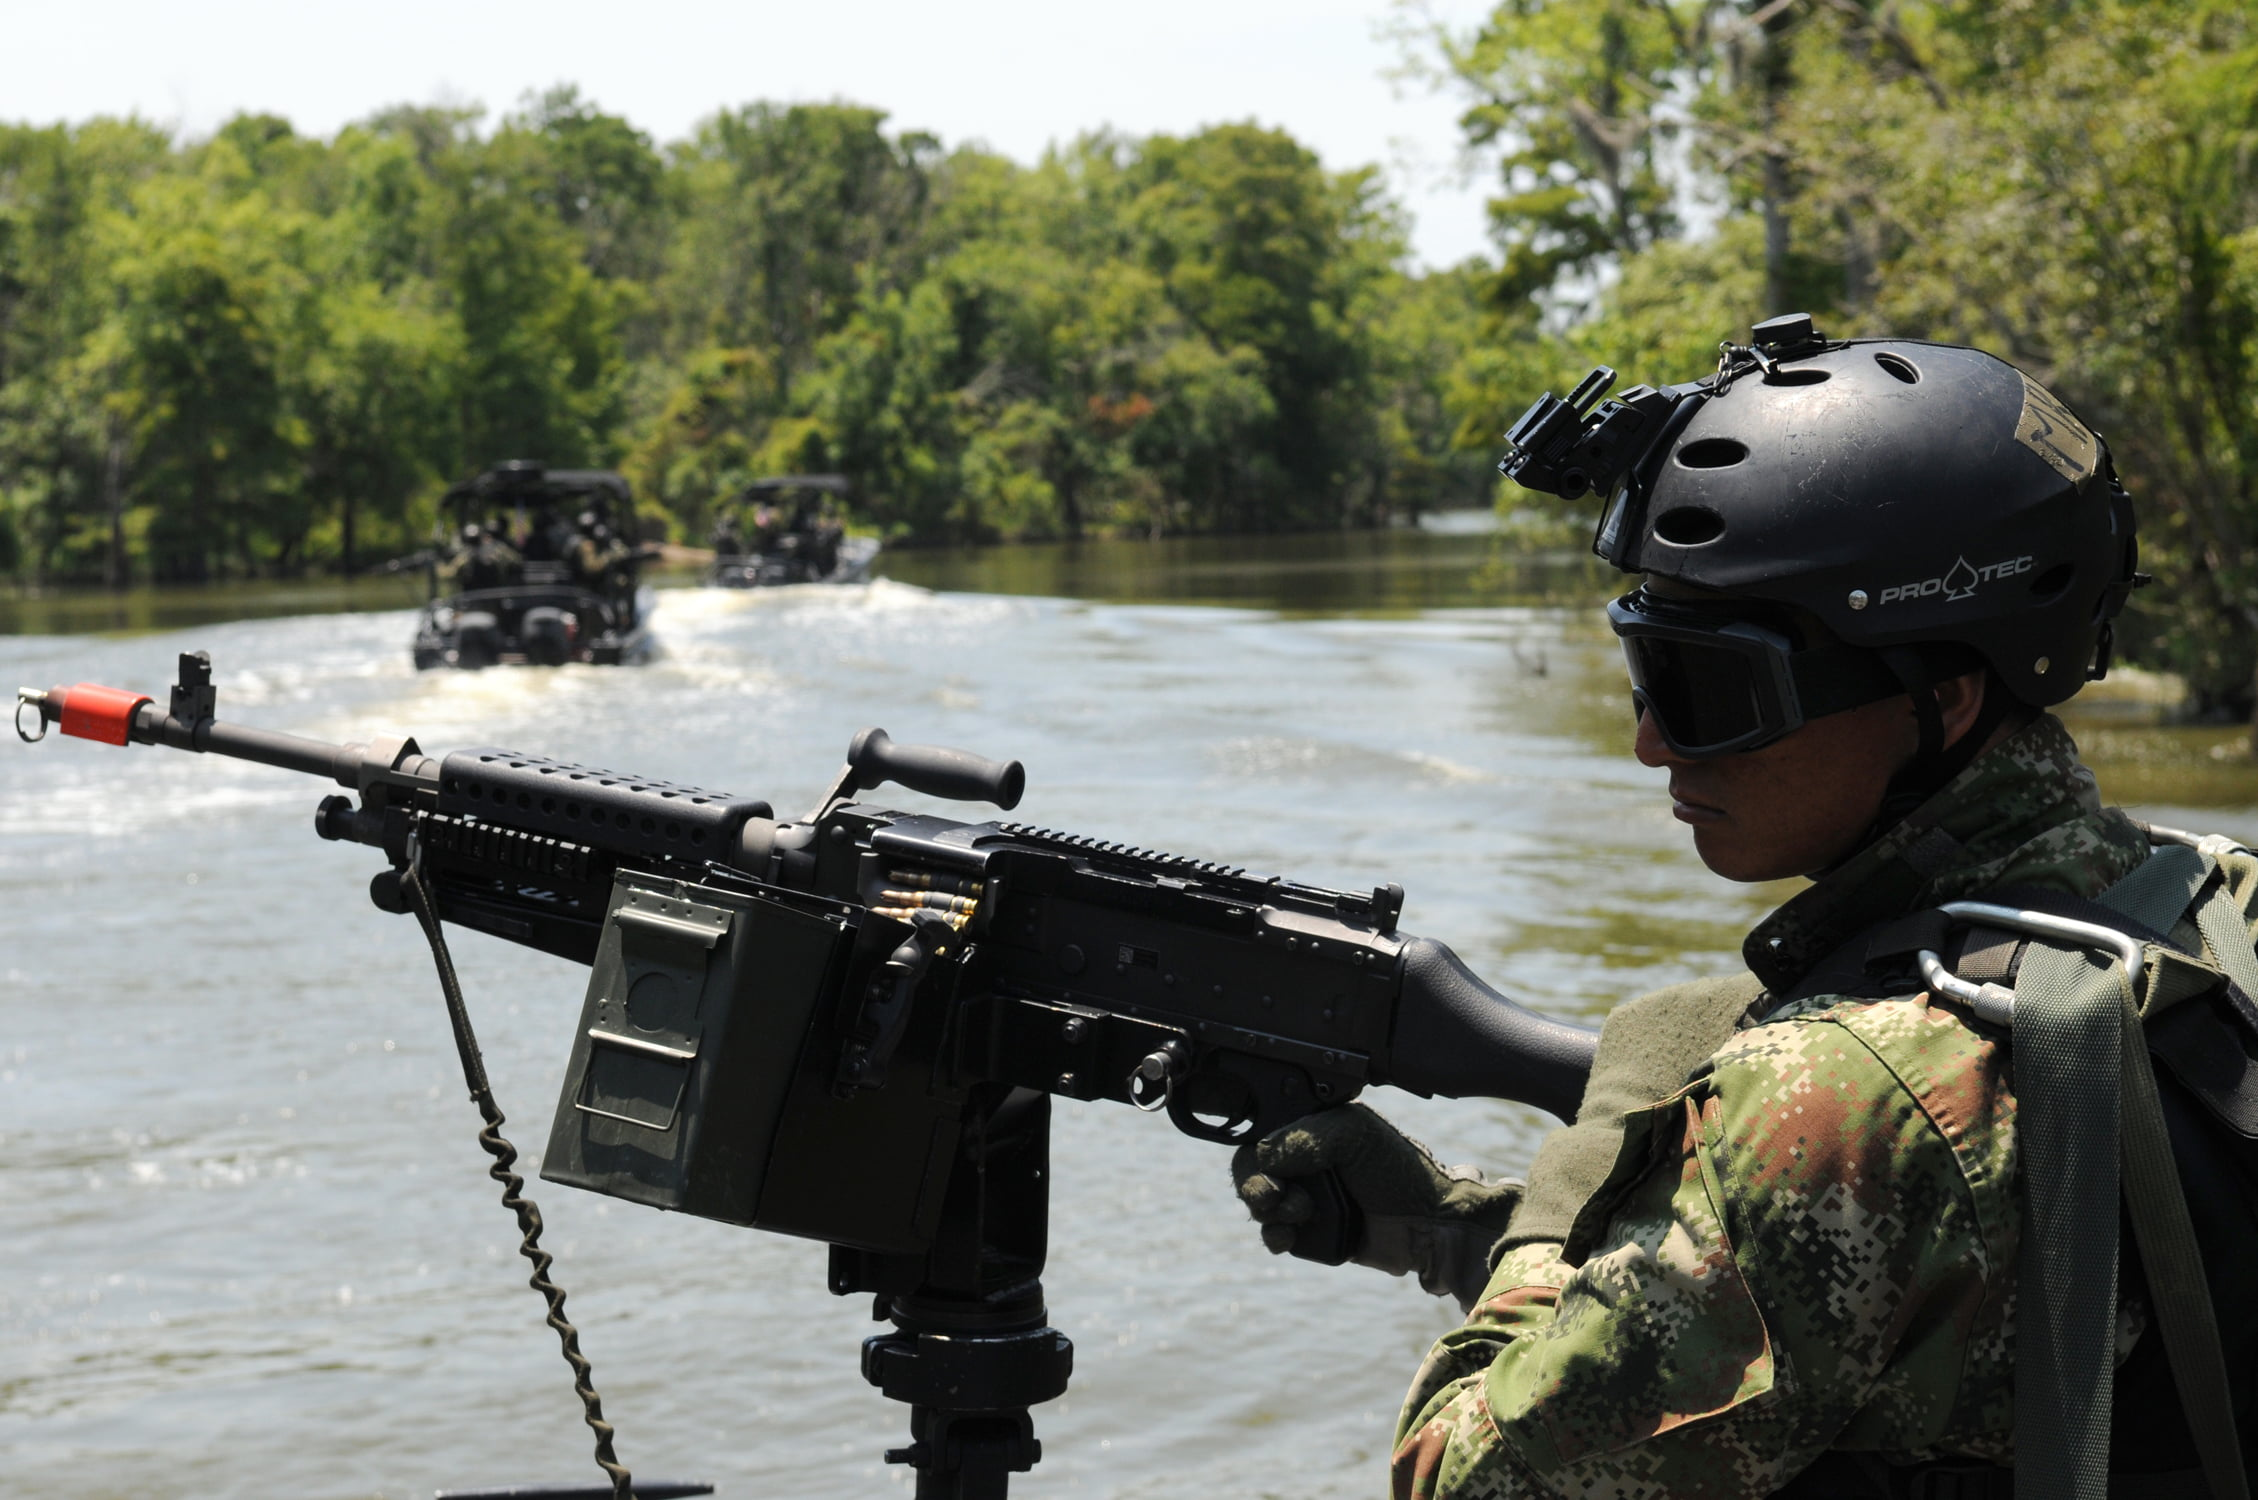 The ELN denies any involvement in the Nariño massacre and accuses the army of alliance with drug traffickers